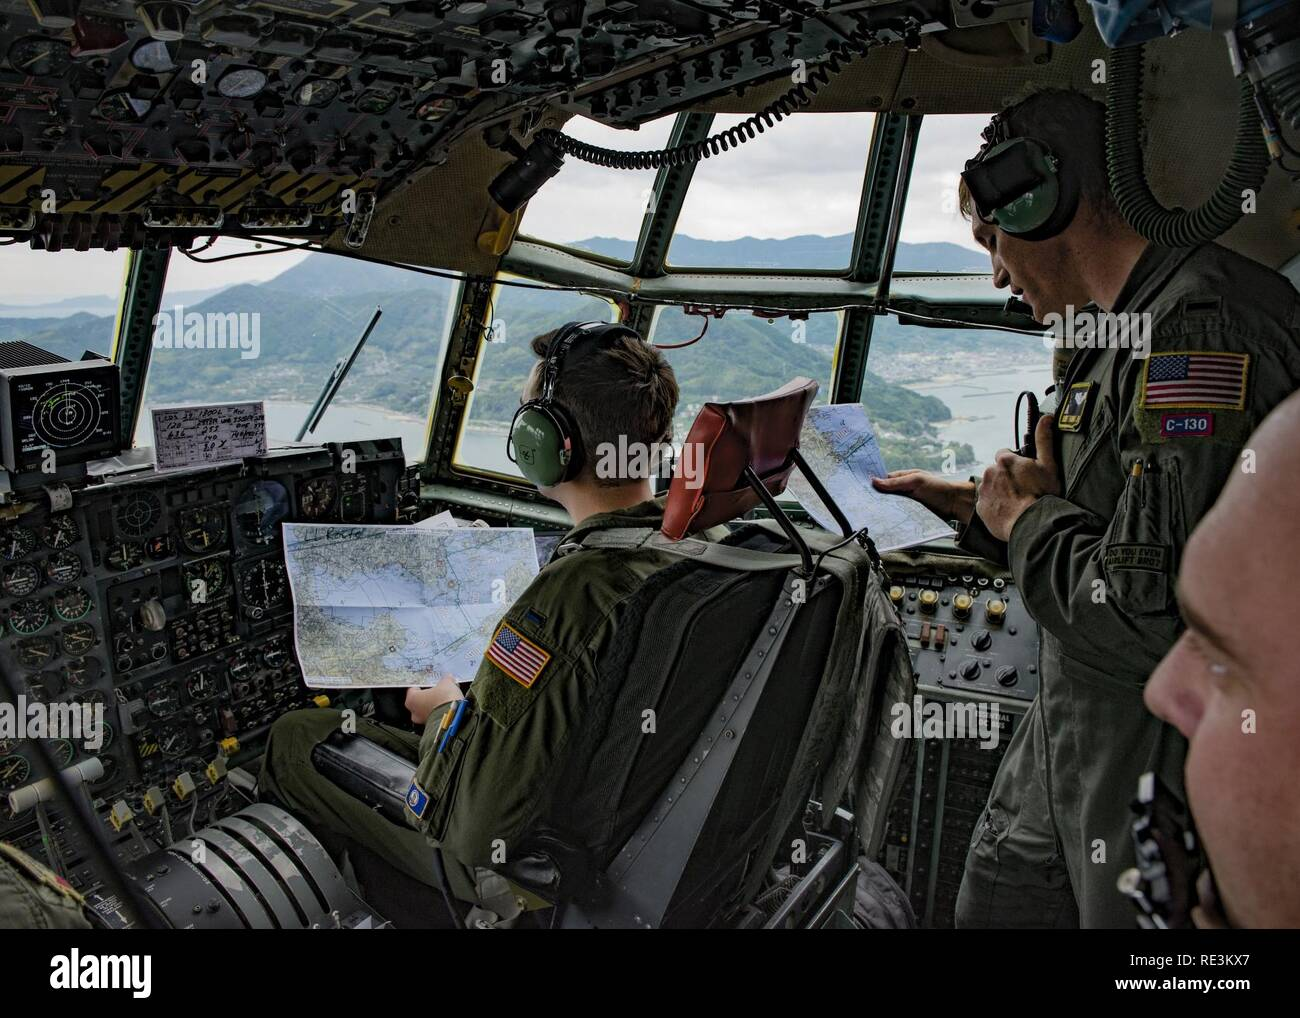 36th Airlift Squadron C-130H navigators confirm charted flight path during Keen Sword 2017 on Nov. 10, 2016, over the Shikoku prefecture, Japan. Approximately 11,000 U.S. service members in the Indo-Asia-Pacific region are scheduled to participate in Keen Sword 2017. - Stock Image